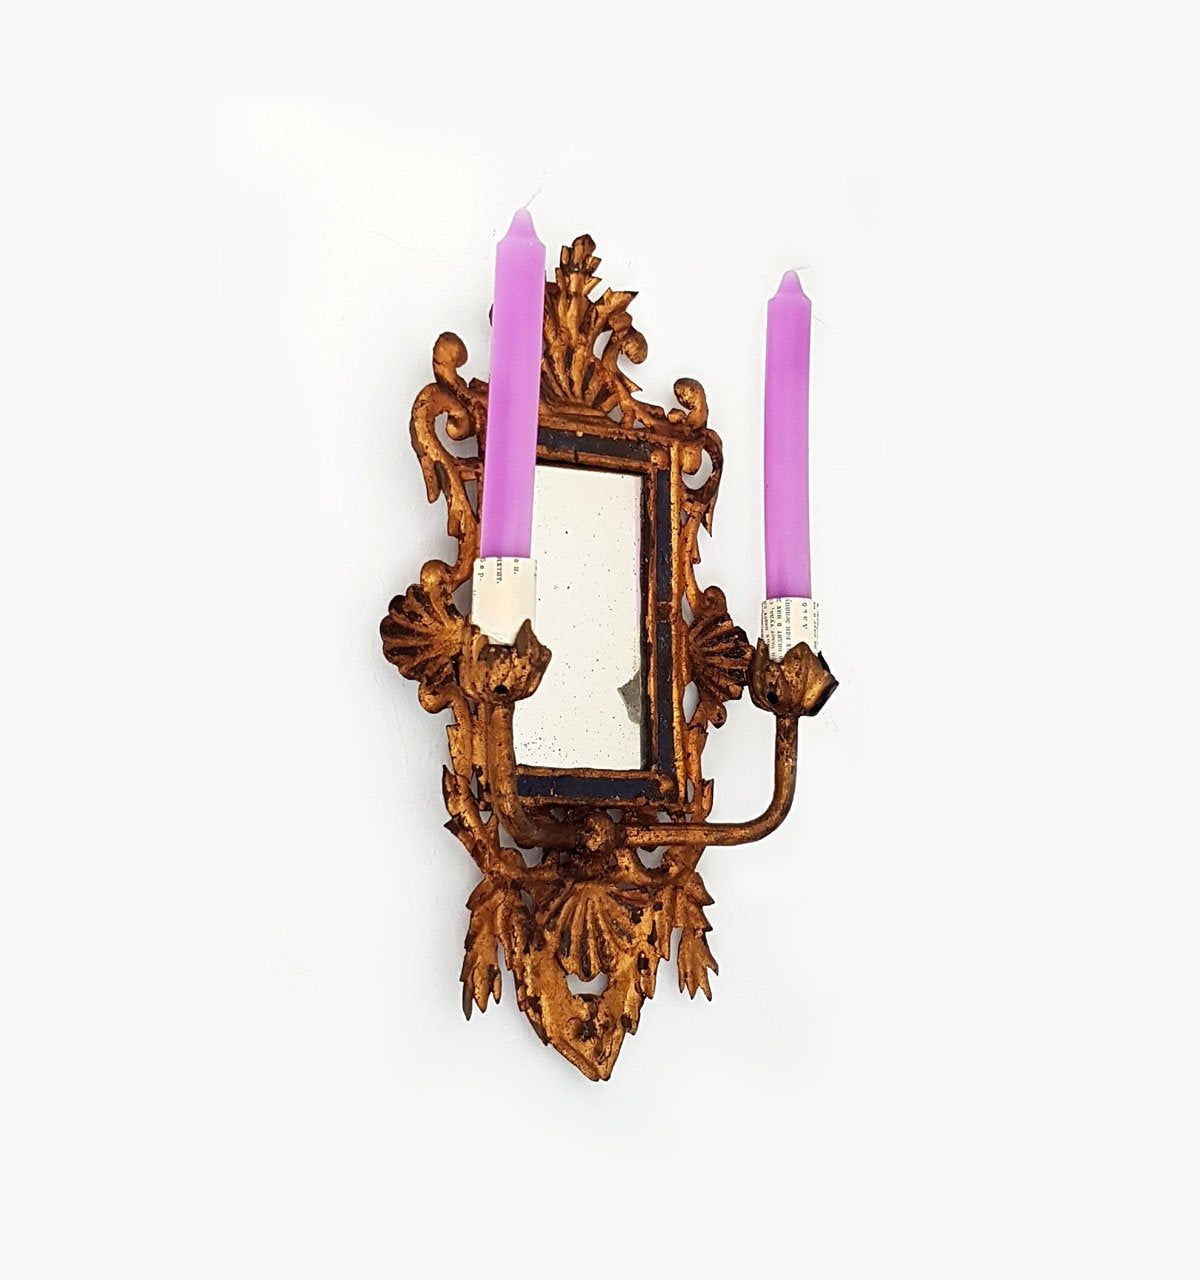 Antique Italian Mirror with Candle Holders , Wall Sconce ... on Antique Style Candle Holder Sconces id=65921